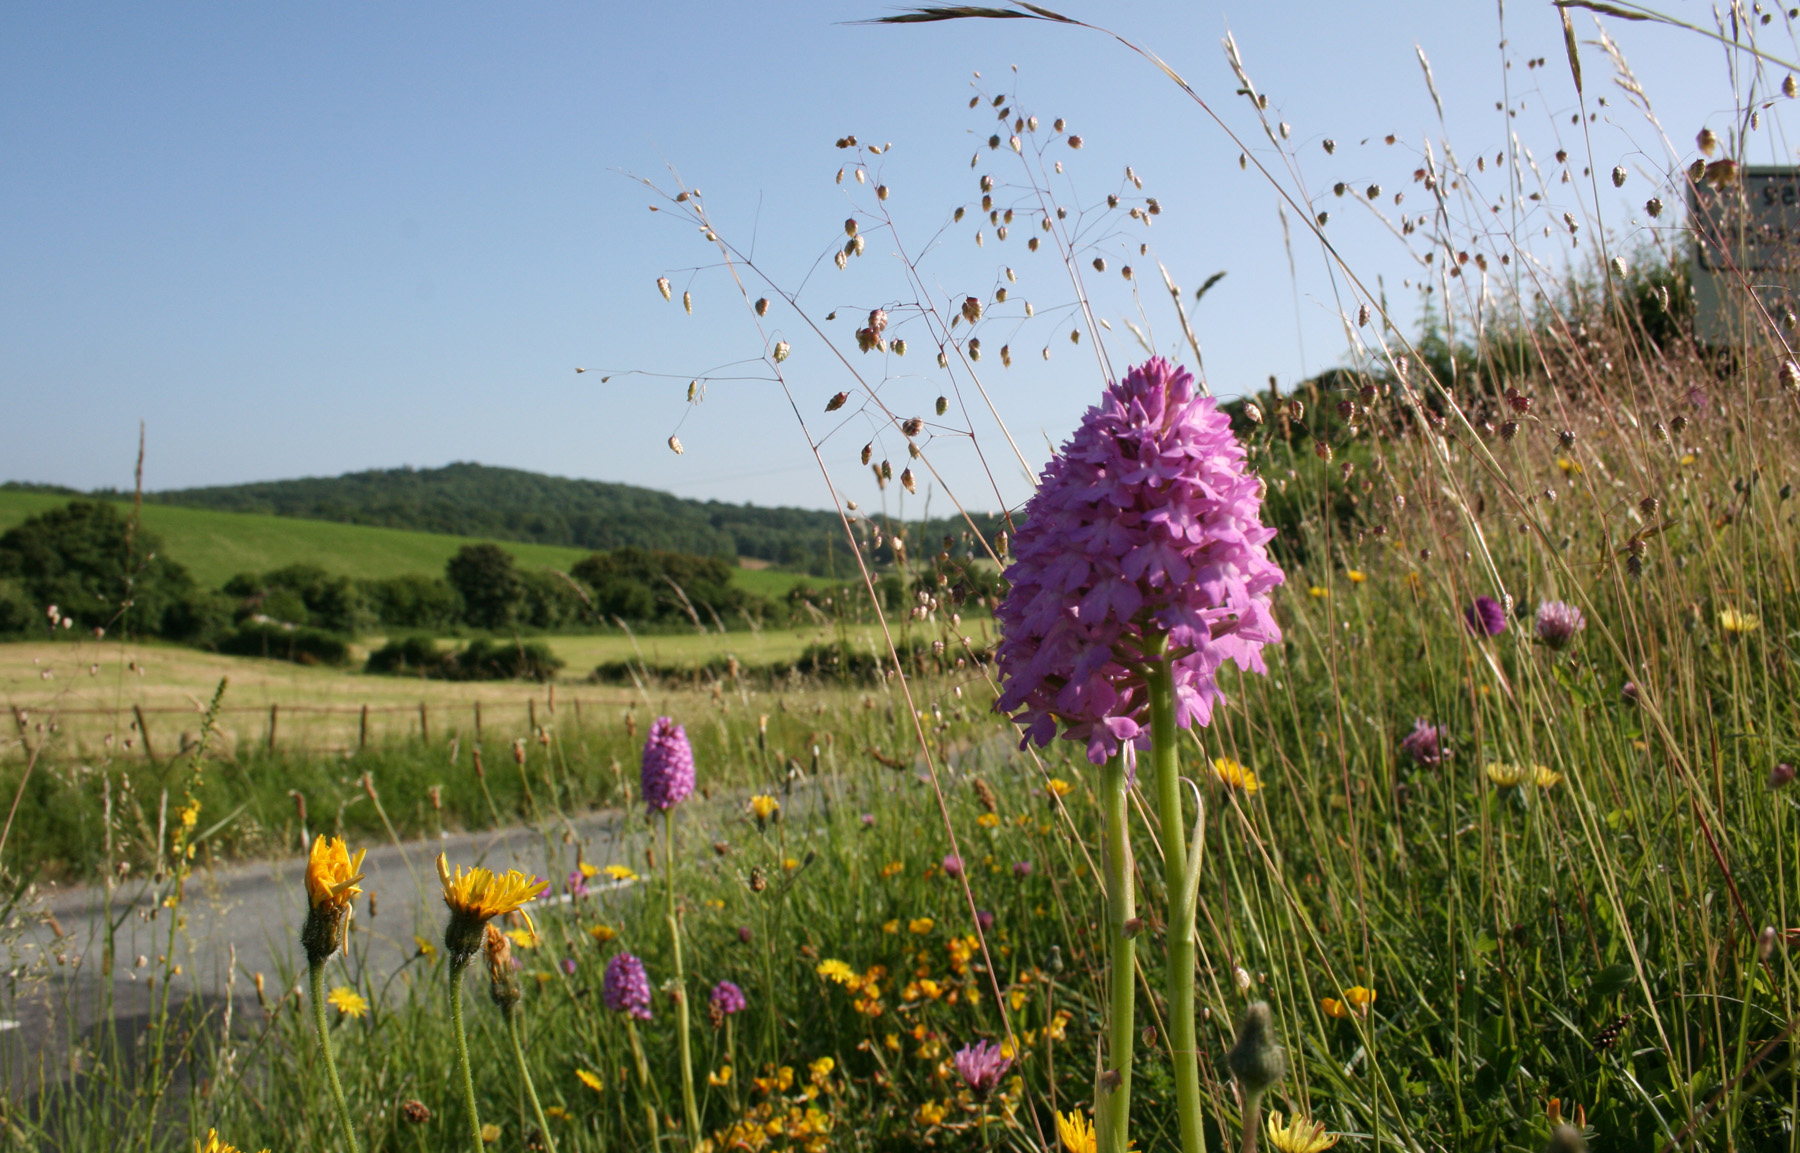 Pyramid orchid on road verge